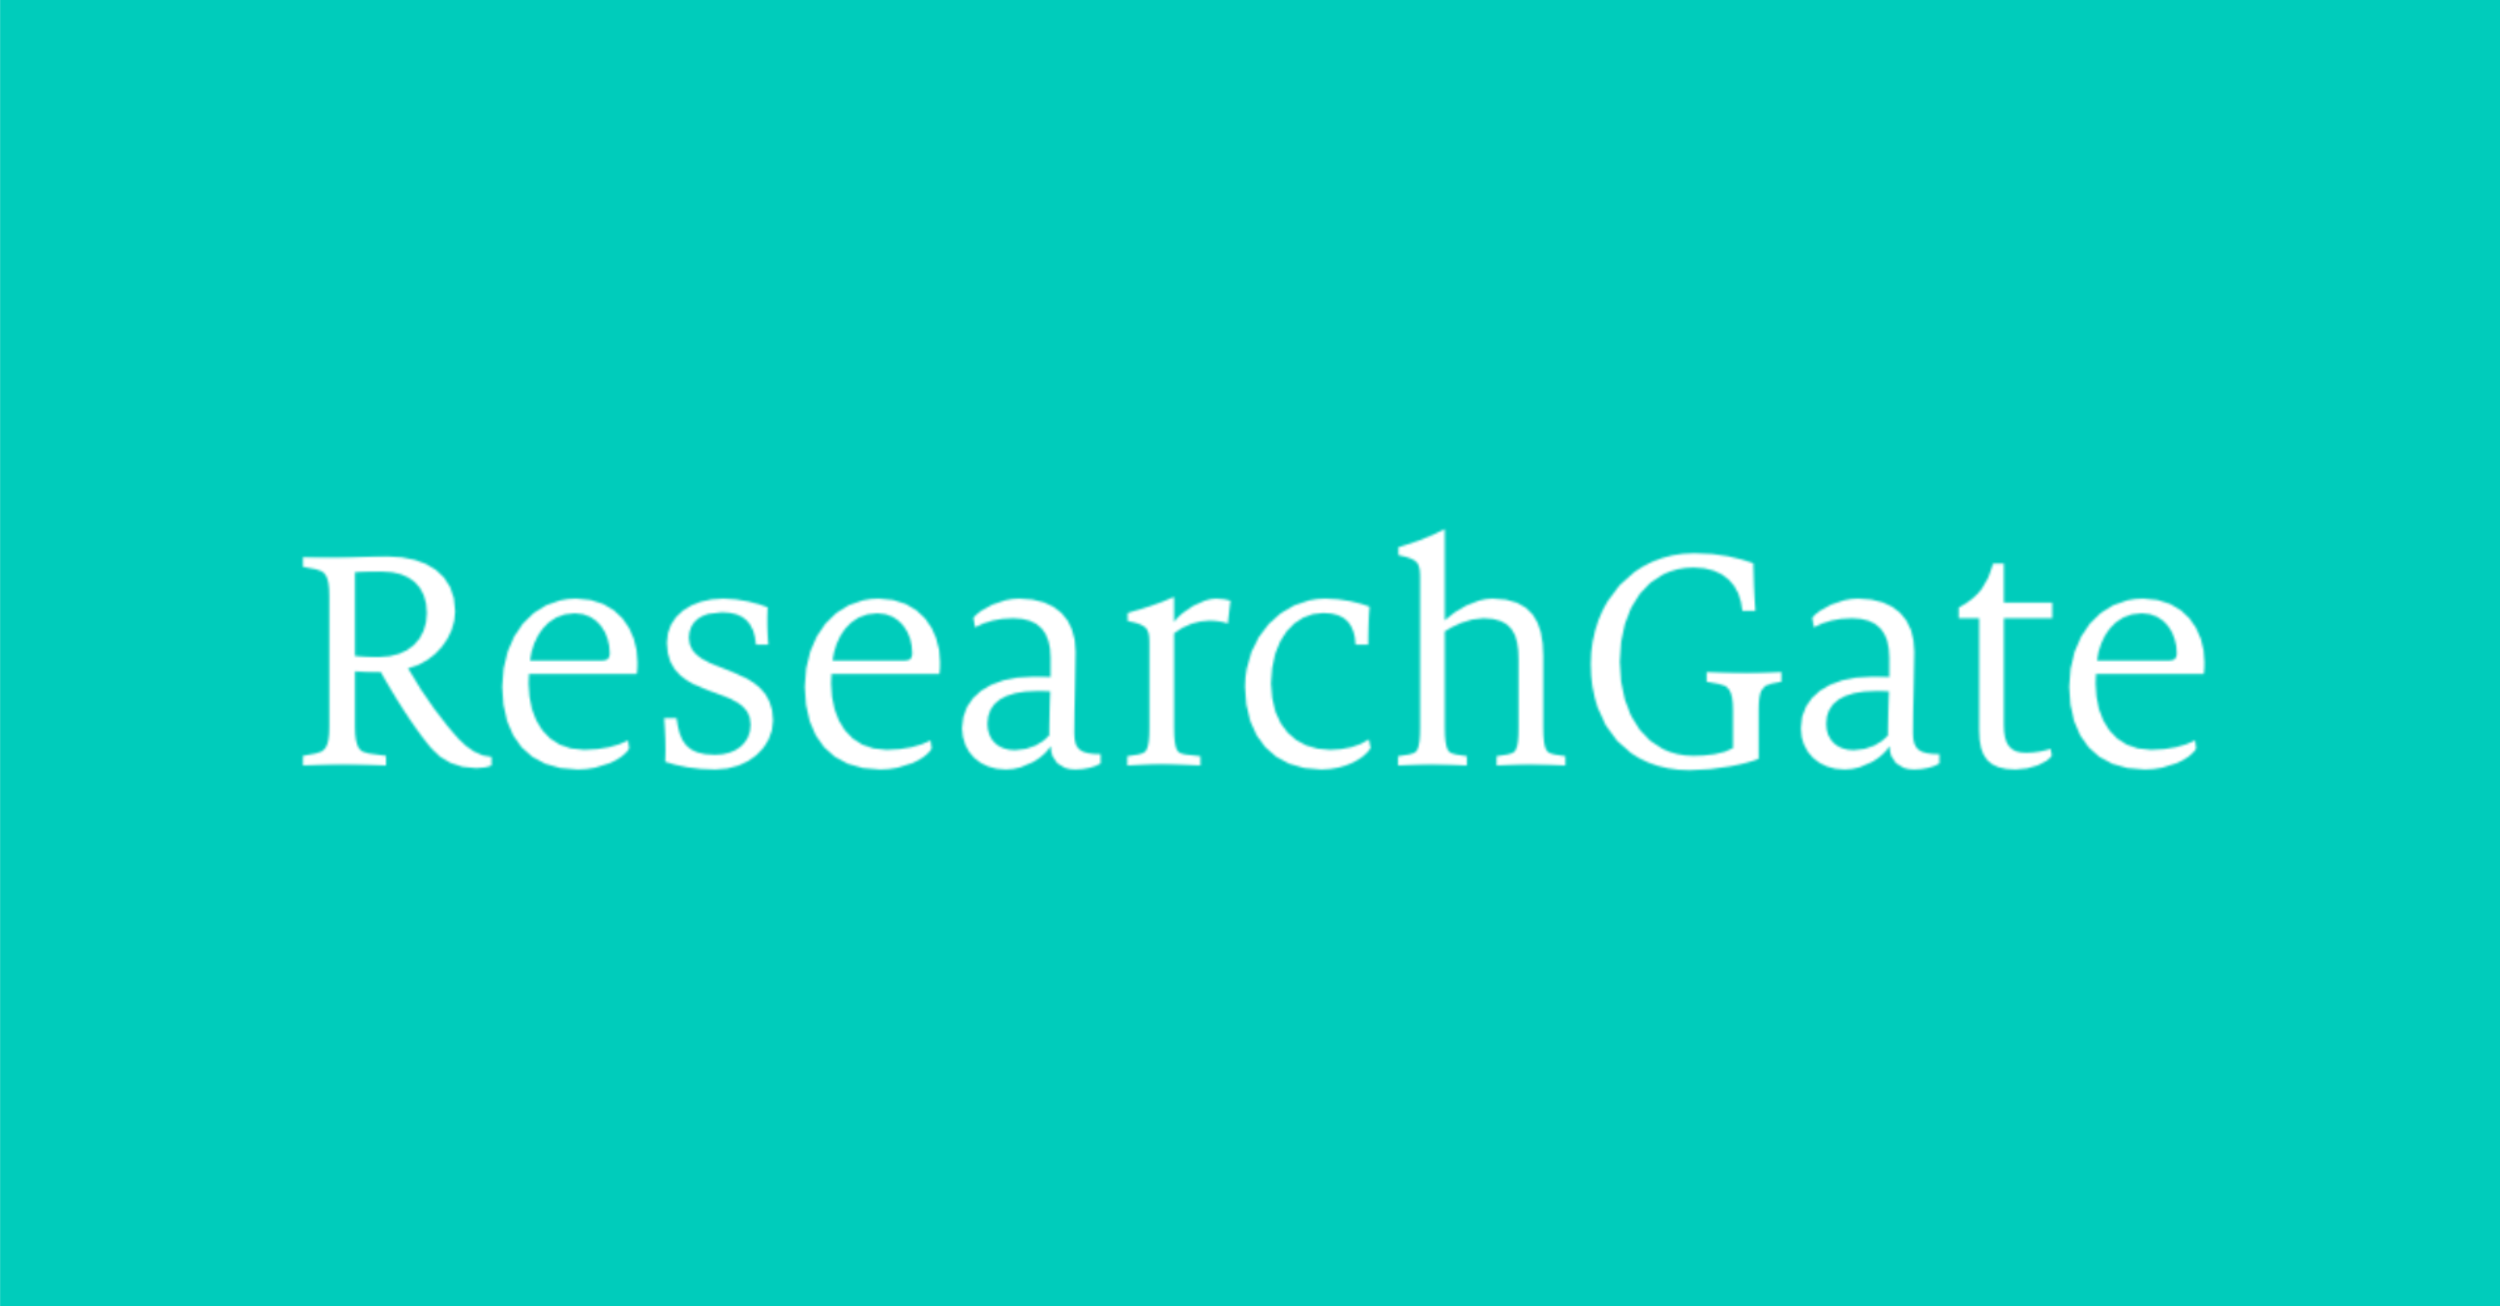 ResearchGate - Harry Hothi